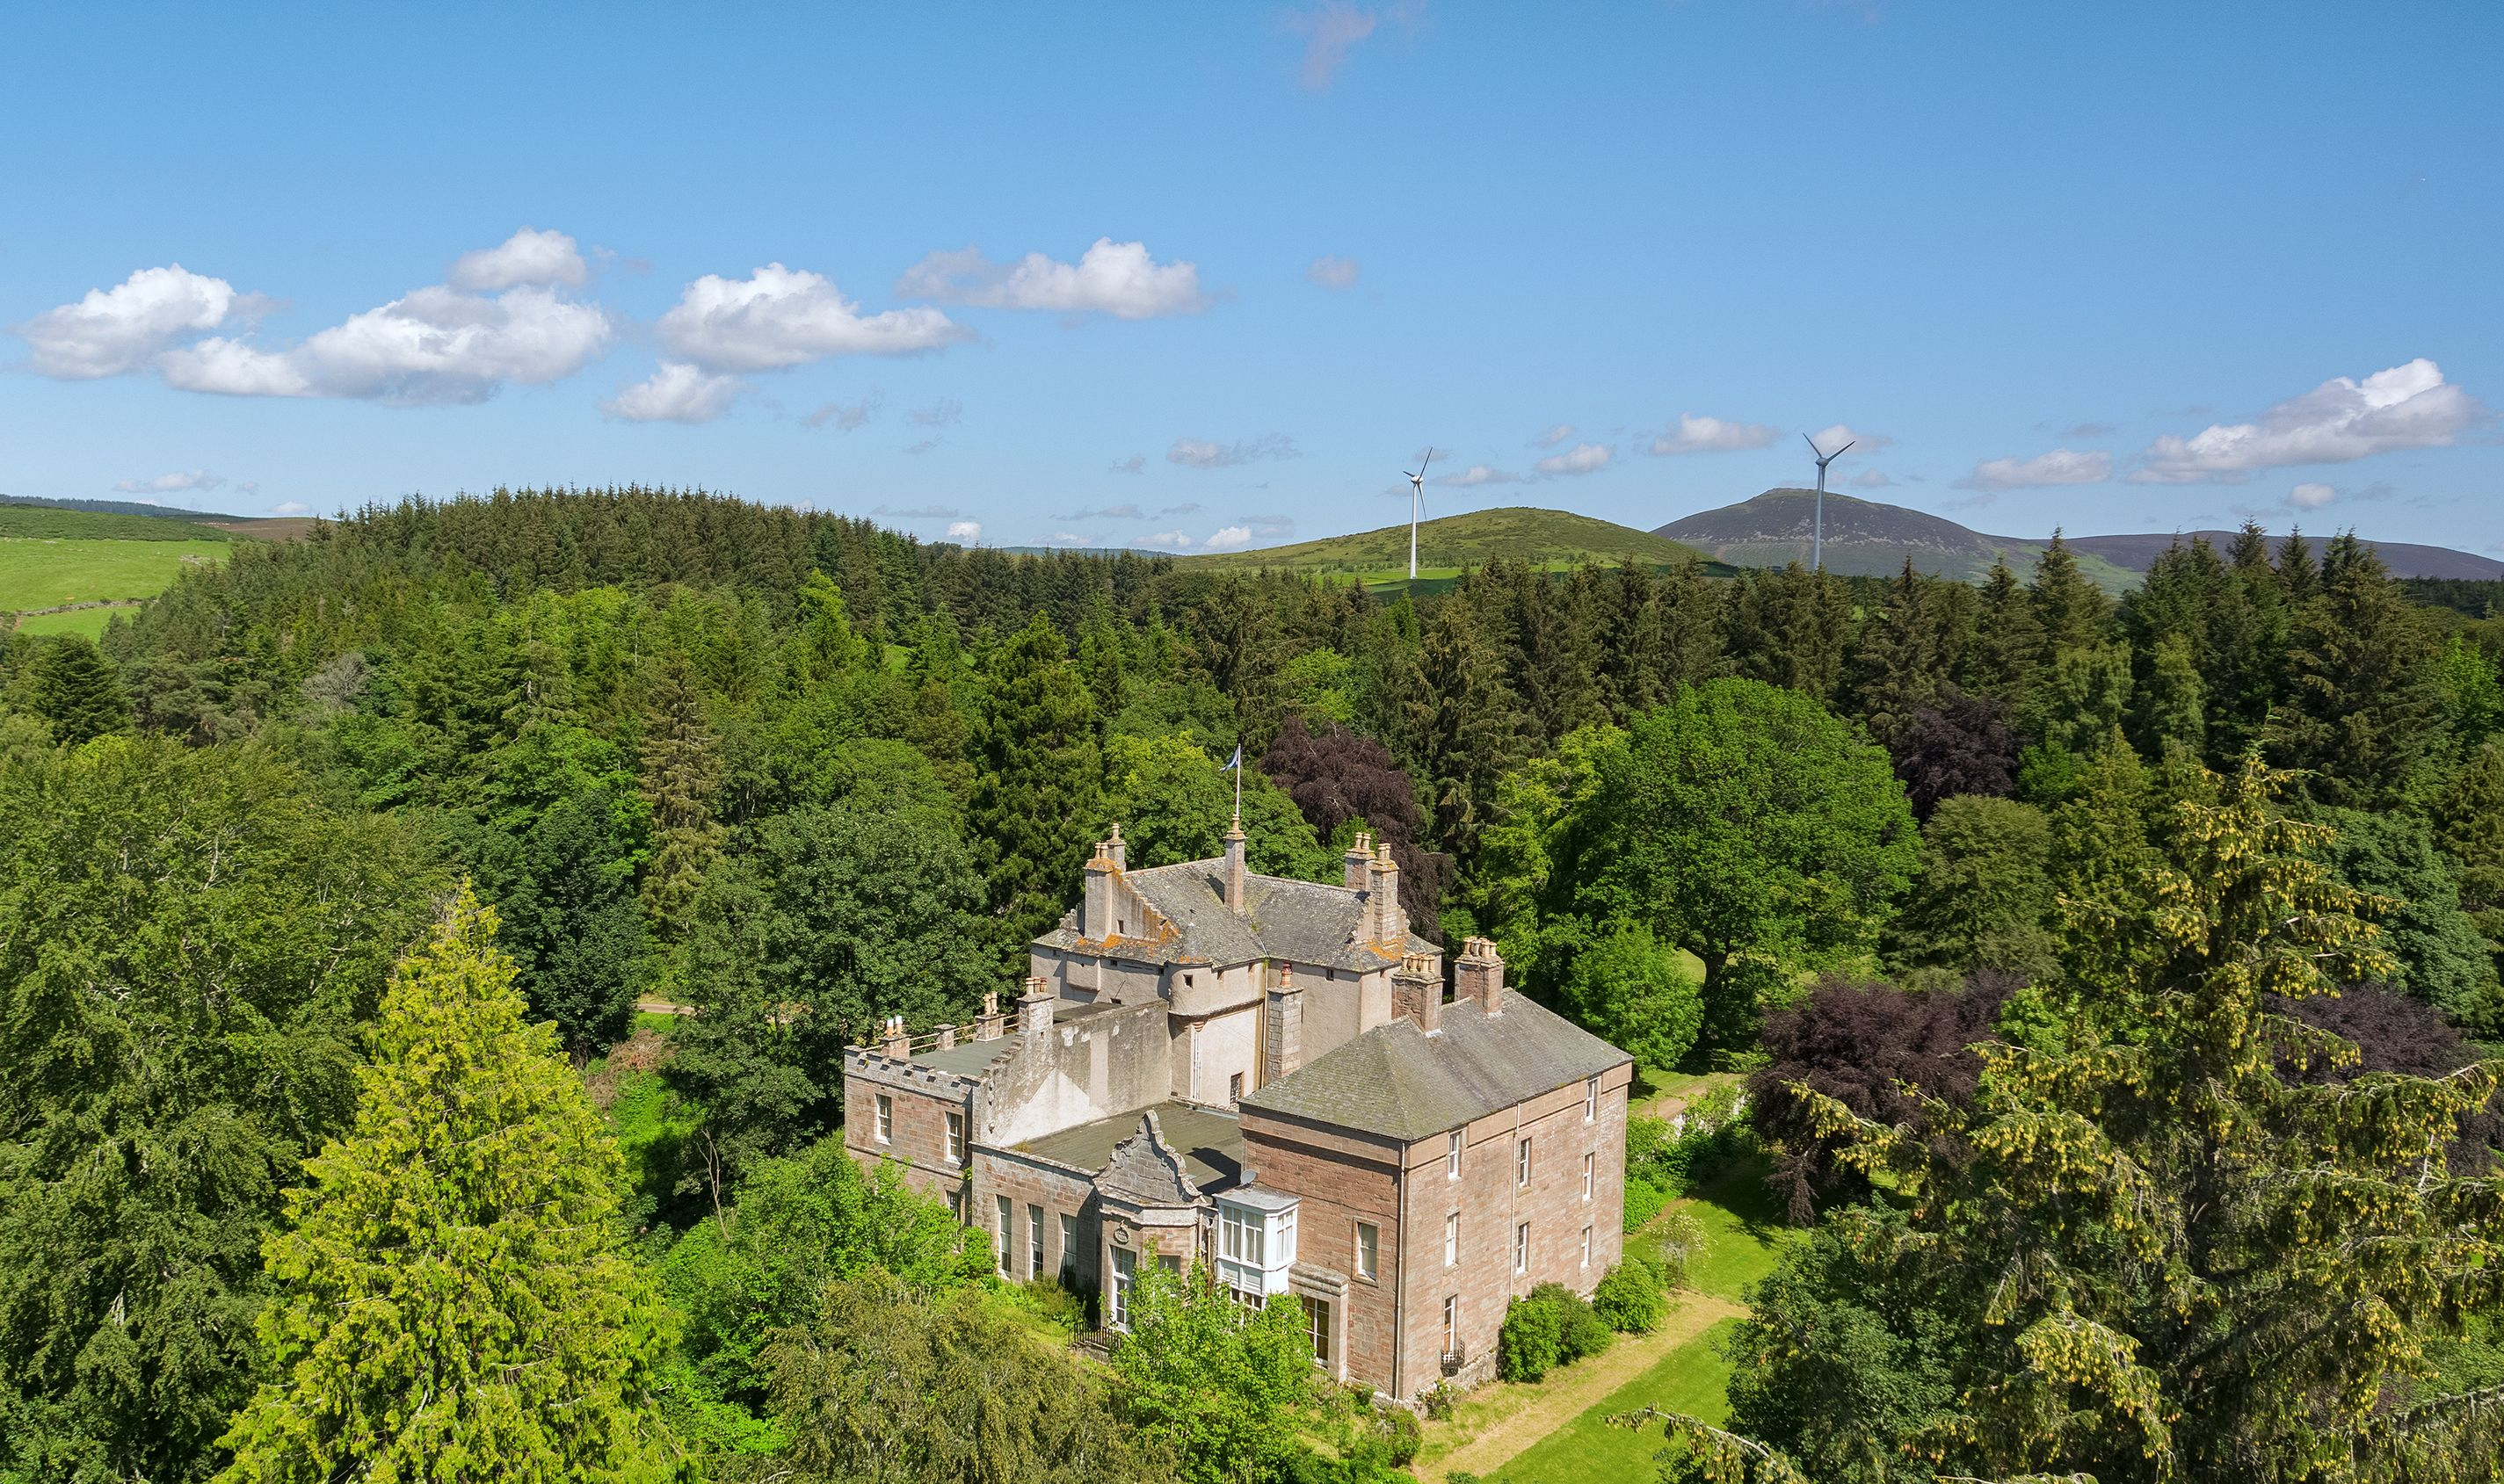 A picture-perfect castle with 9 bedrooms could be yours for just £400,000 in Aberdeenshire